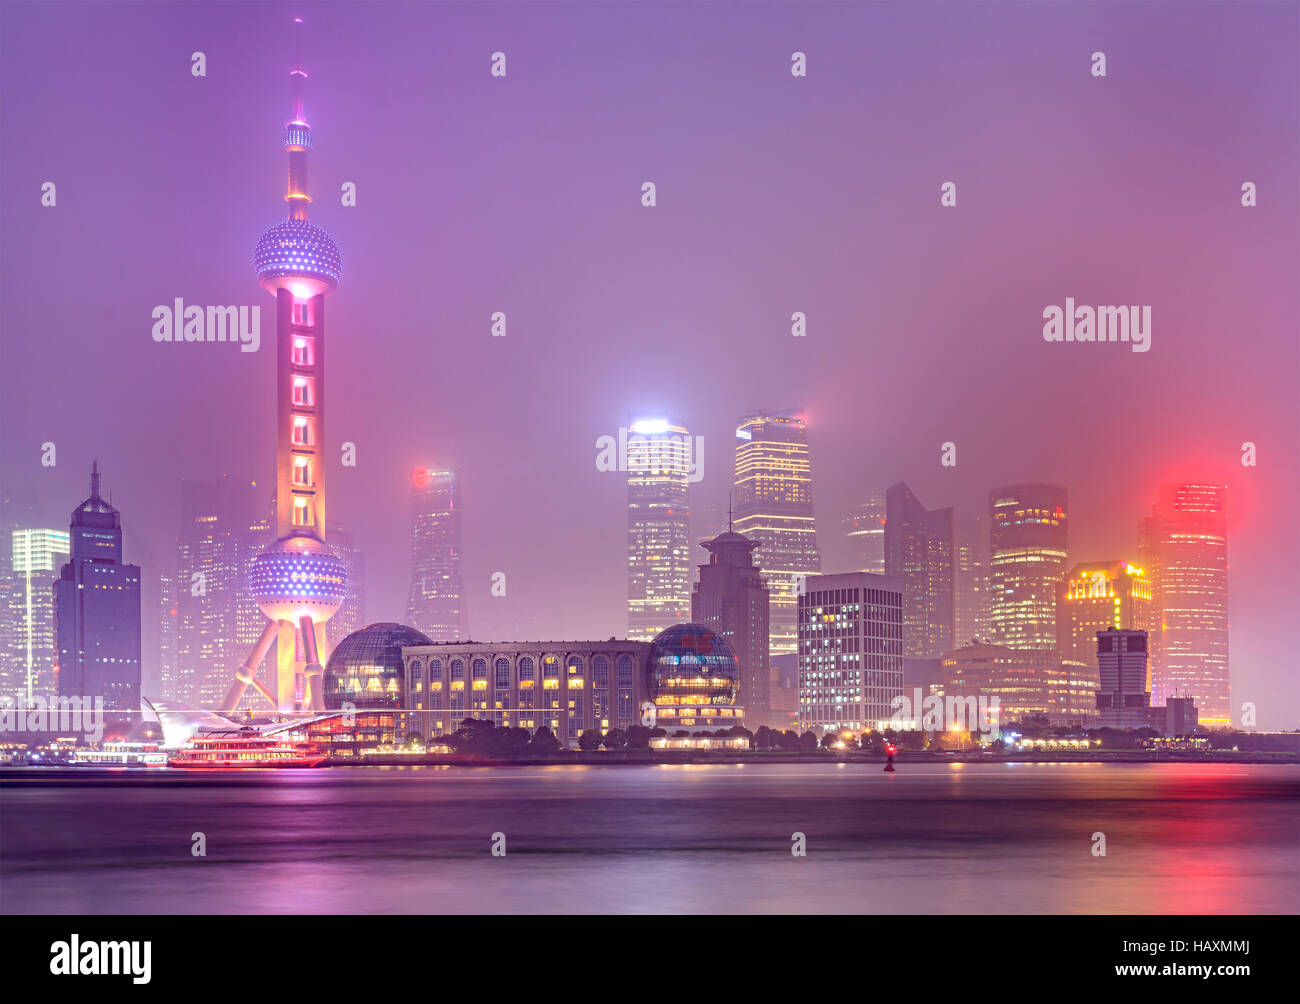 Pudong modern city centre in Shanghai on a river forming modern architecture waterline at sunset when tall towers - Stock Image